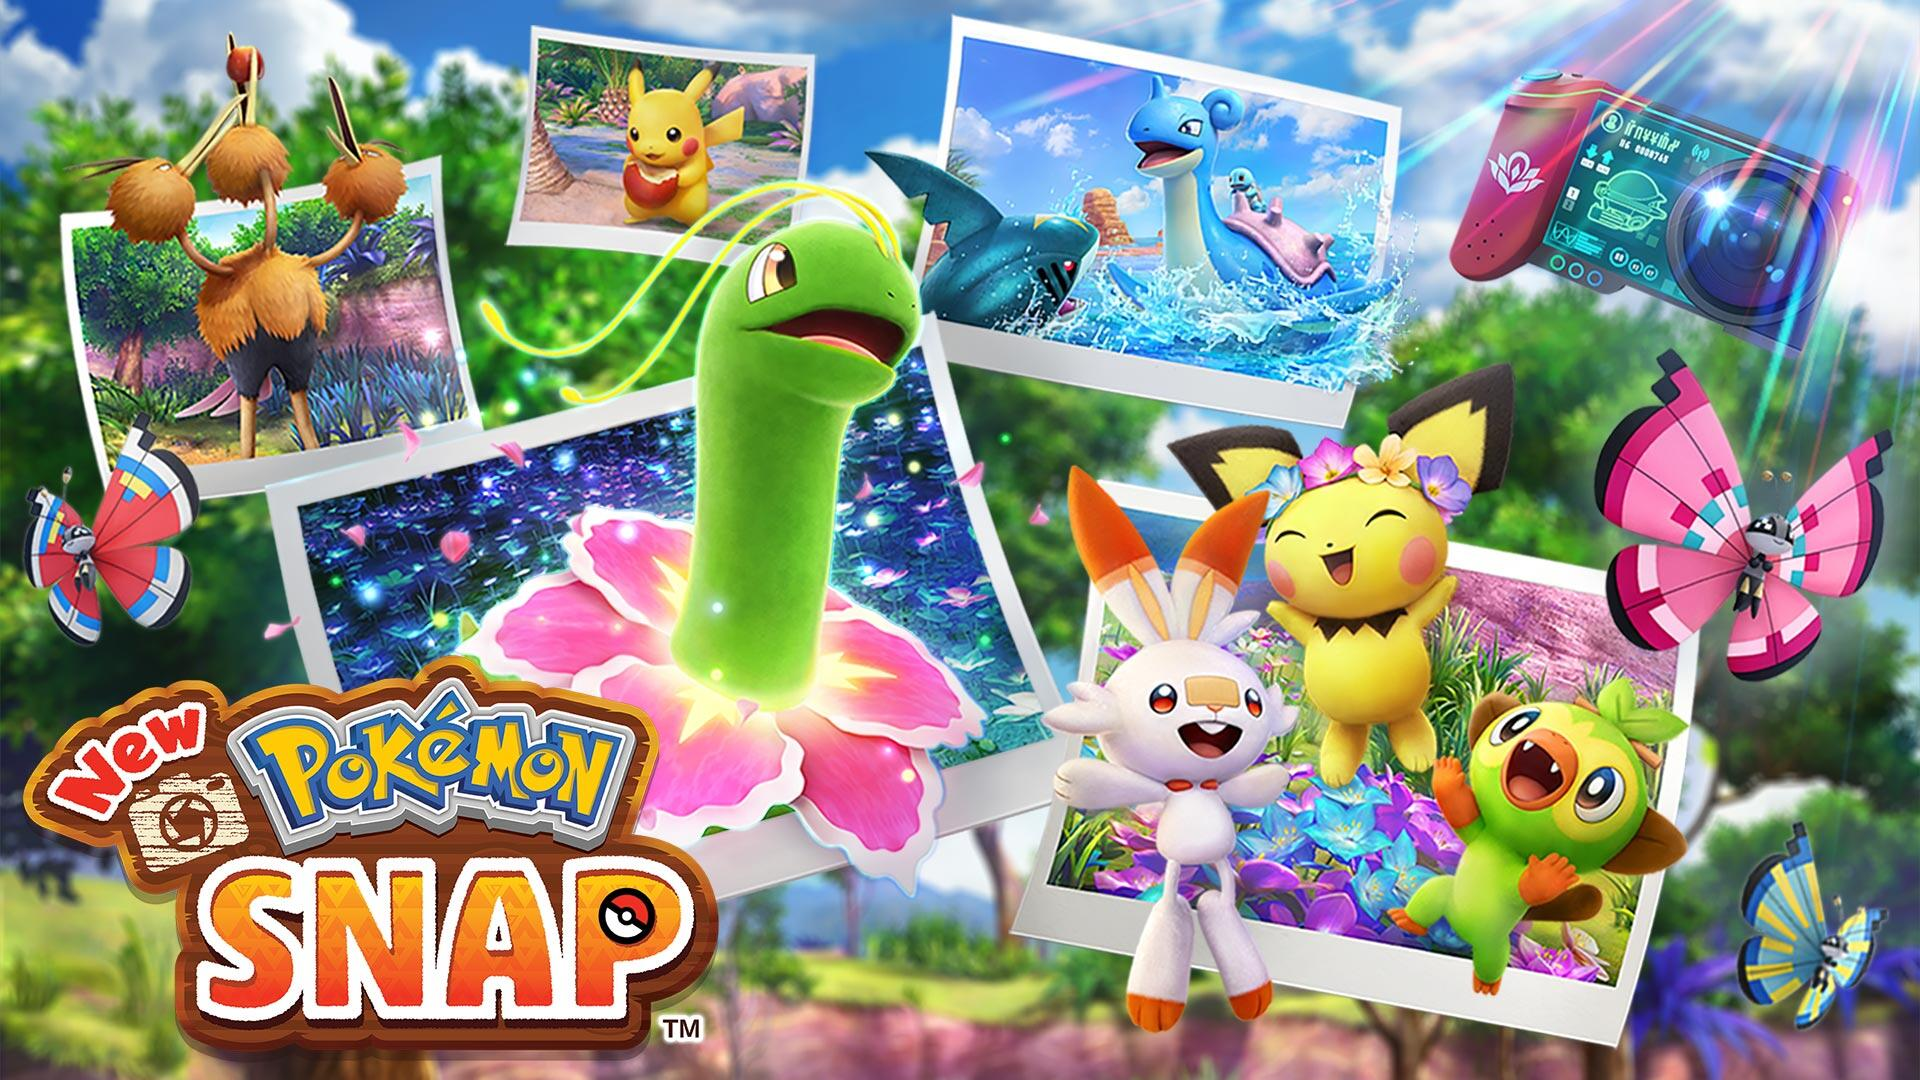 New Pokemon Snap: The most chill Nintendo game since Animal Crossing - CNET